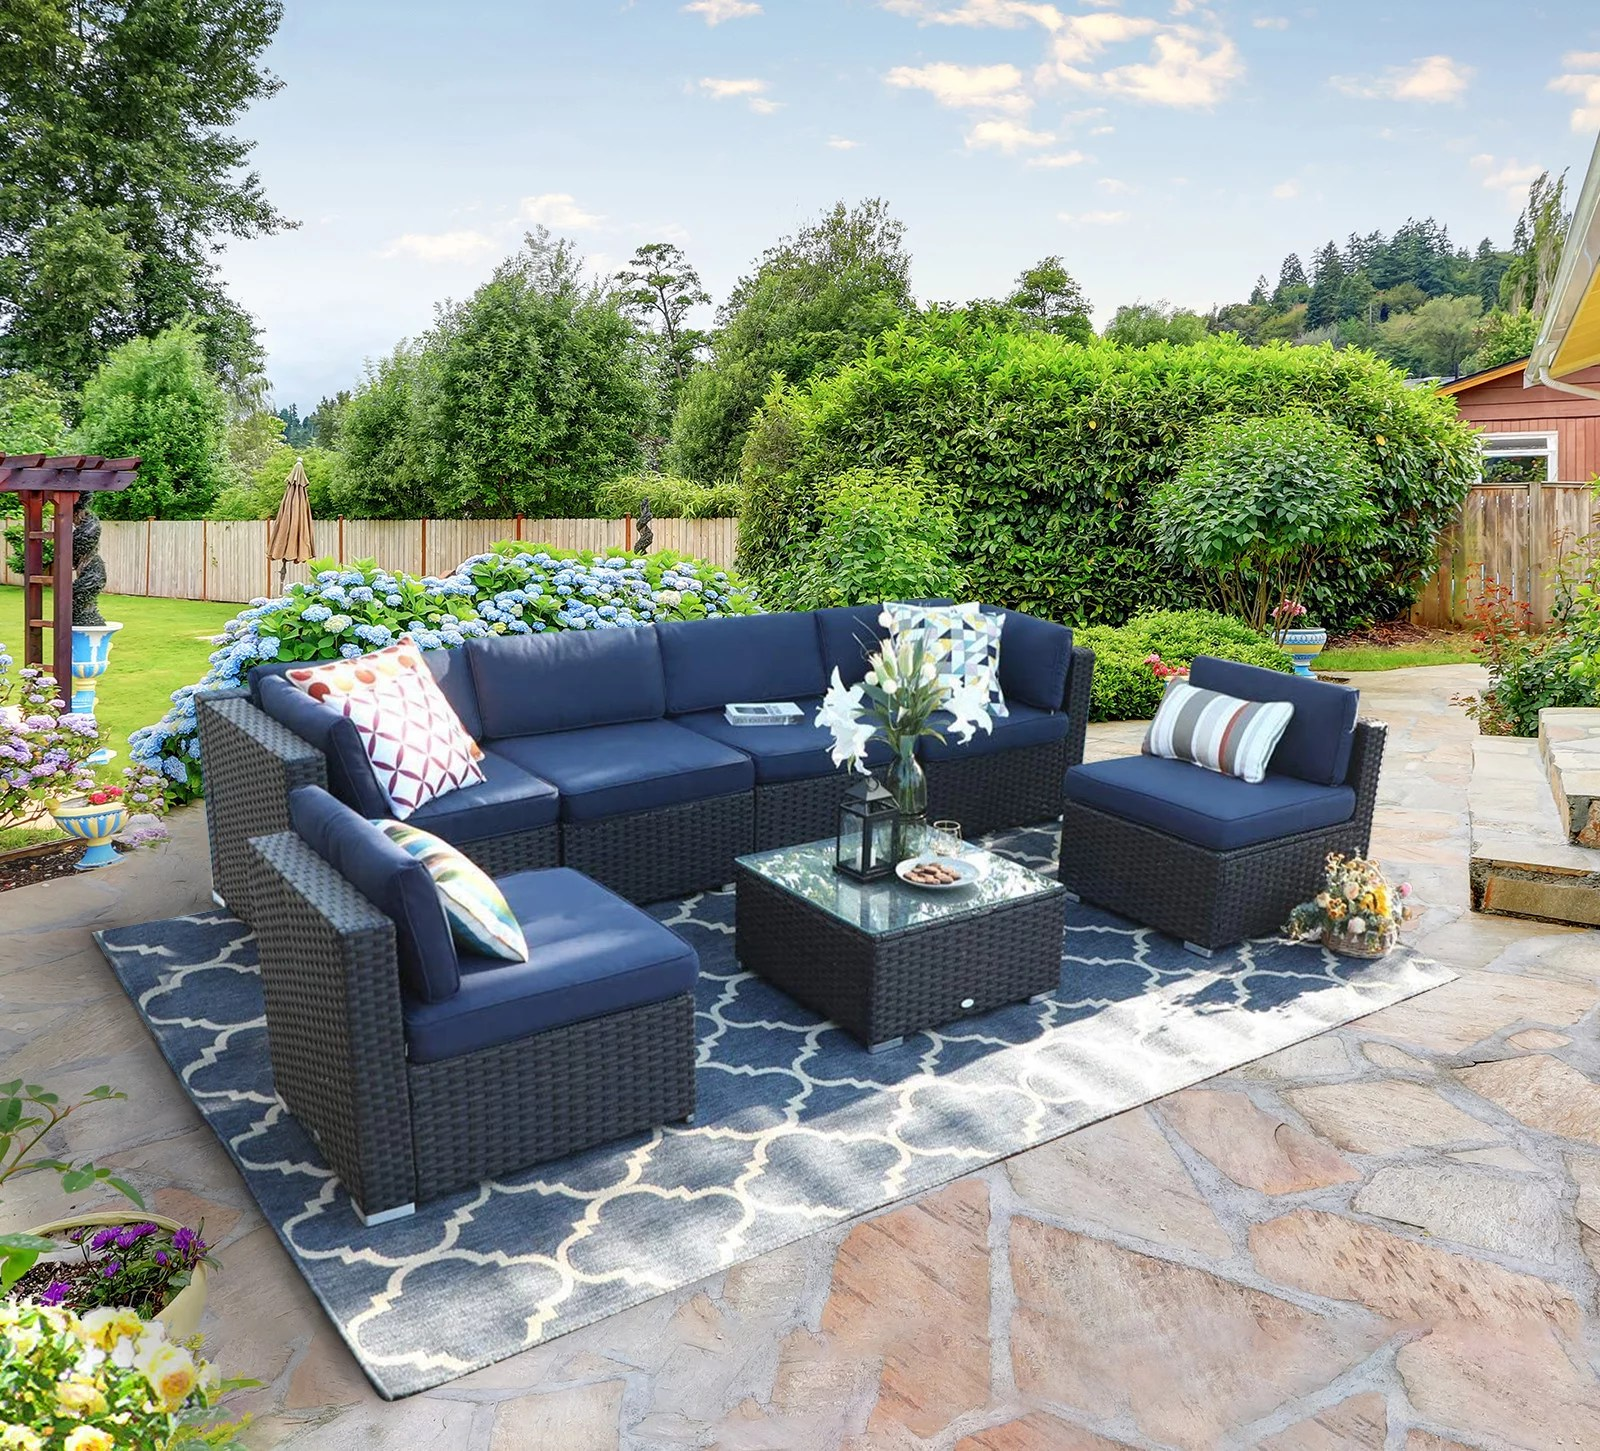 mf studio 7 pieces outdoor patio sectional sofa sets all weather pe rattan conversation sets with glass table blue